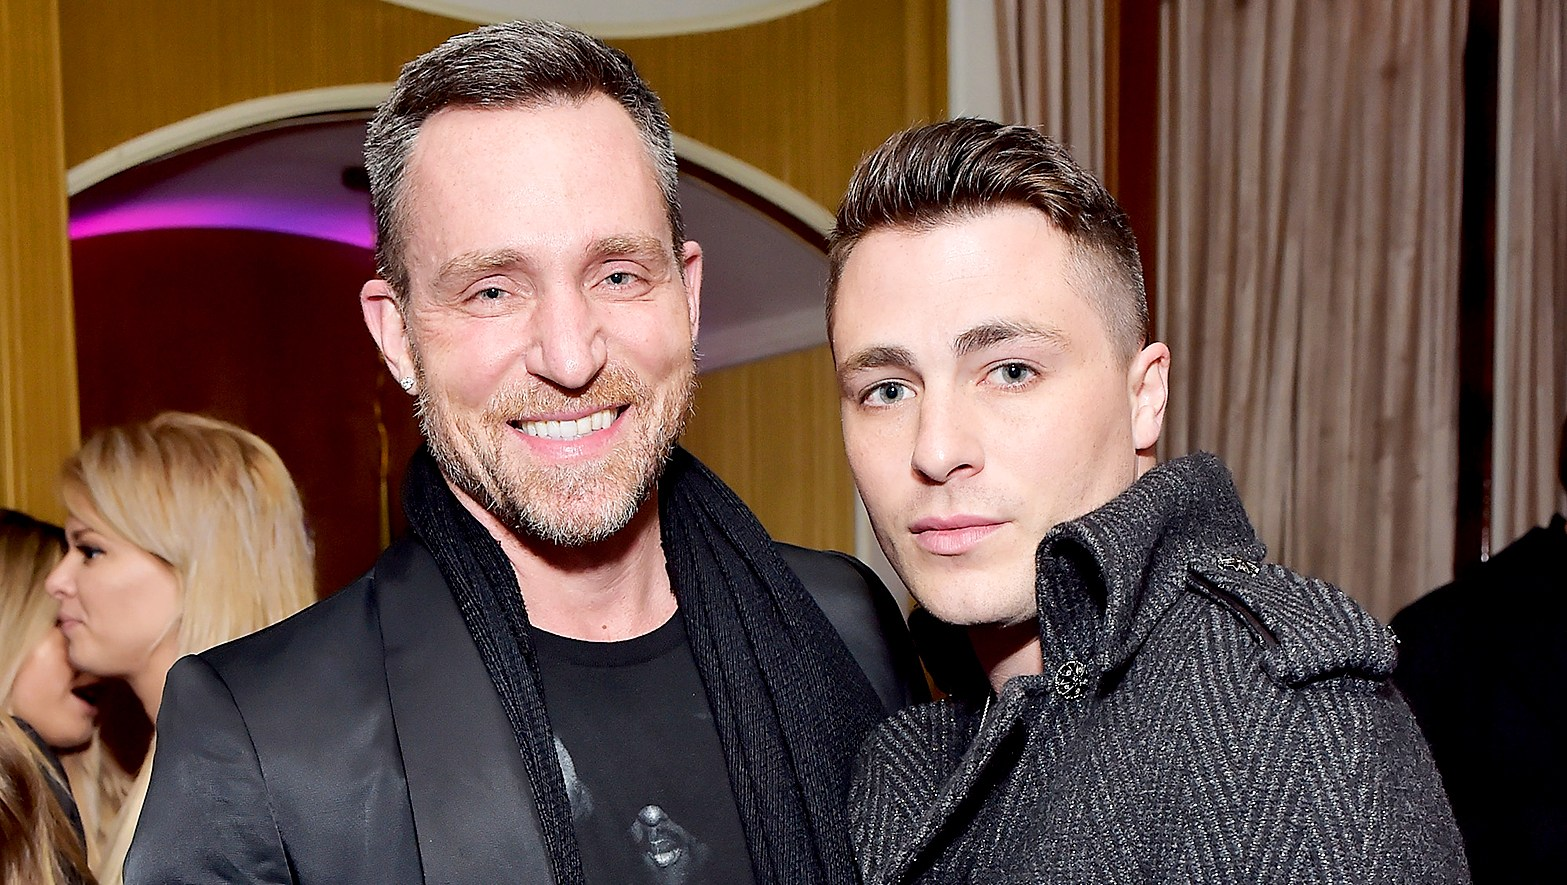 Colton-Haynes-Files-for-Divorce-From-Jeff-Leatham